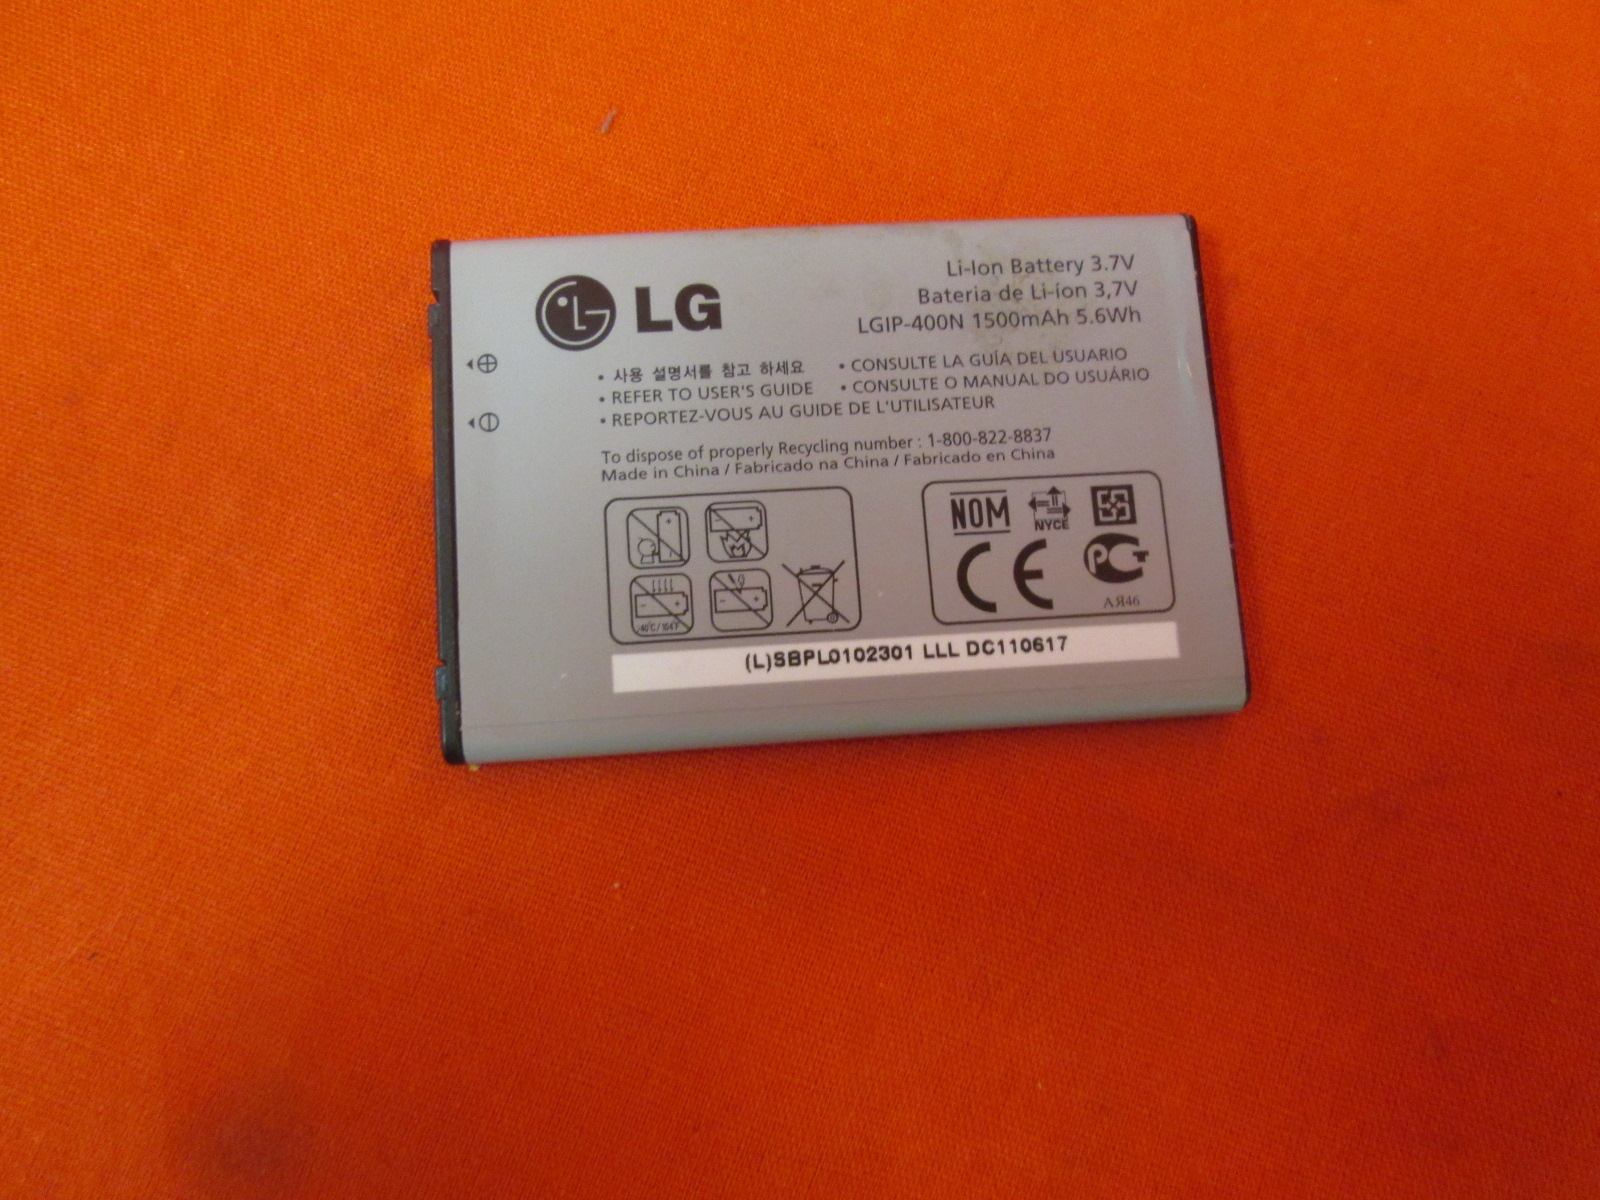 LG LGIP-400N 1500 Mah Battery For LG Optimus Puccini Phoenix Thrive